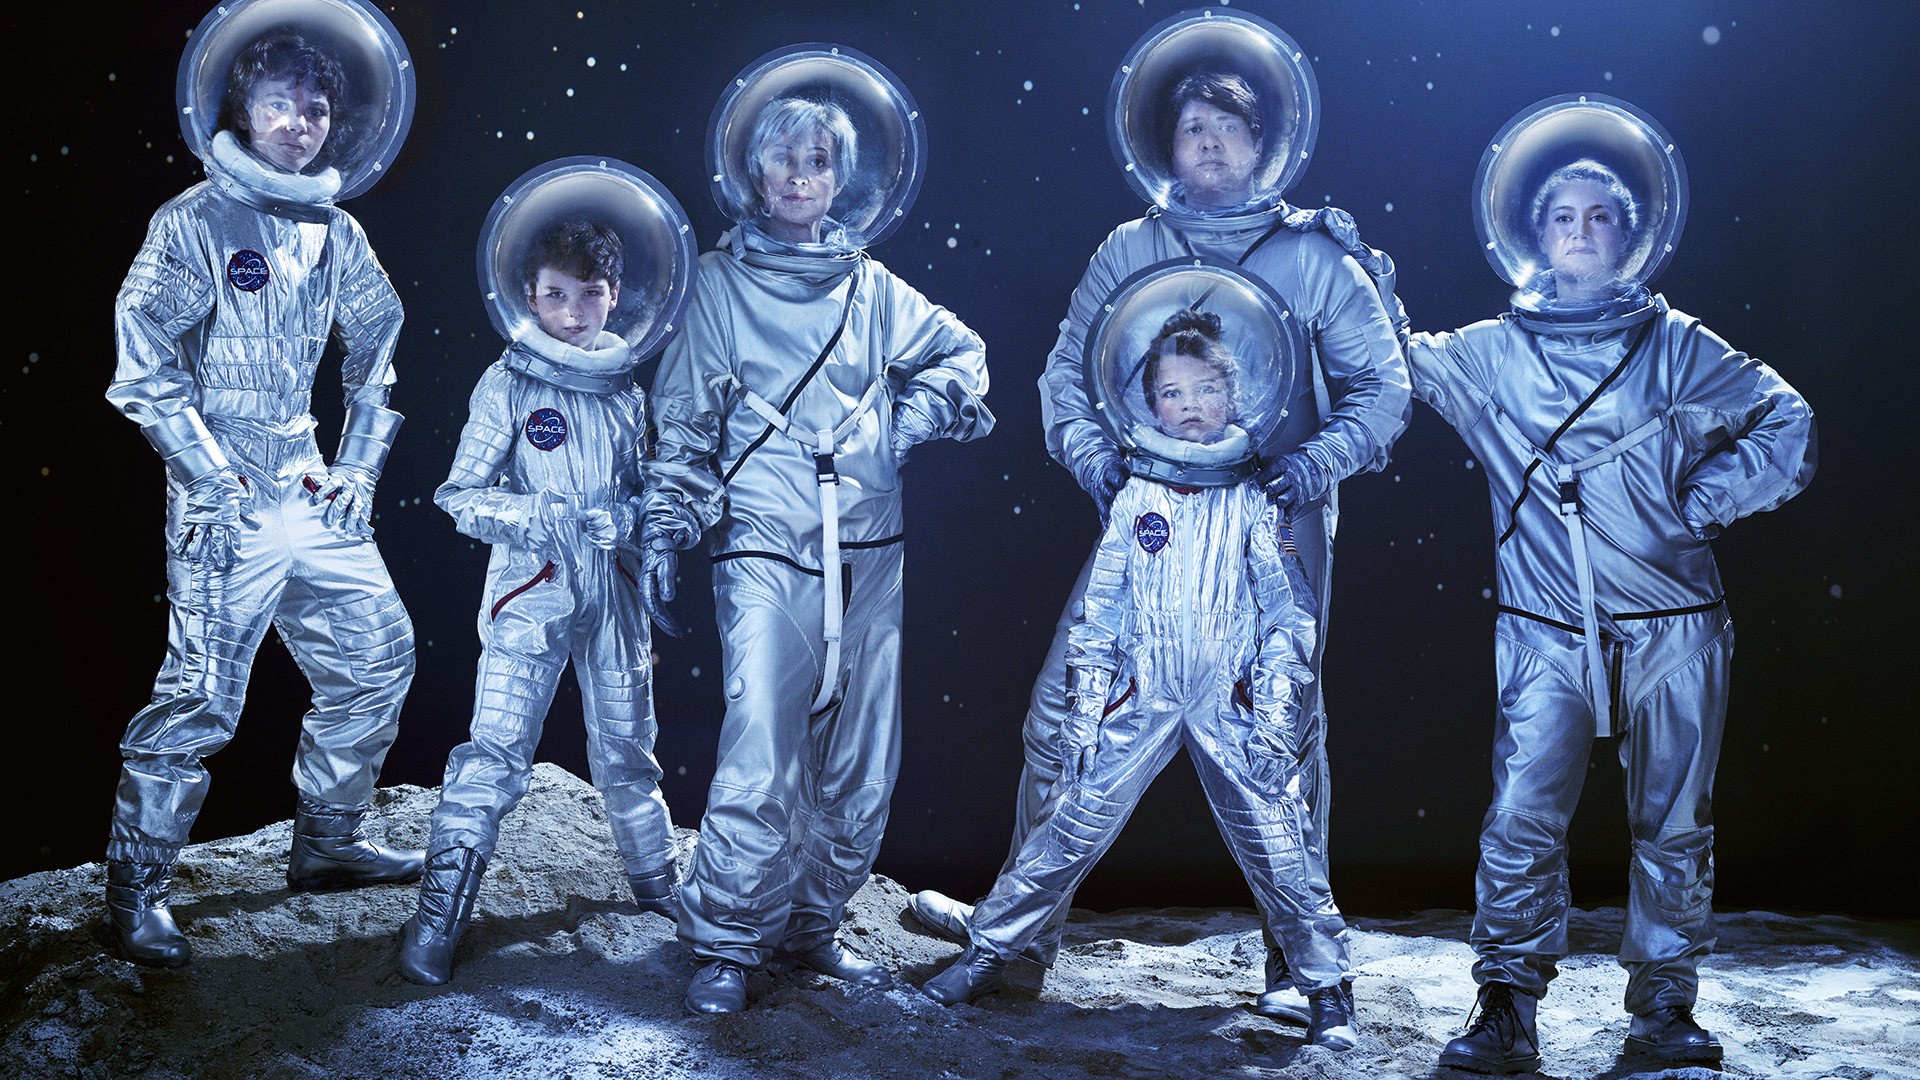 The cast of Young Sheldon as American astronauts